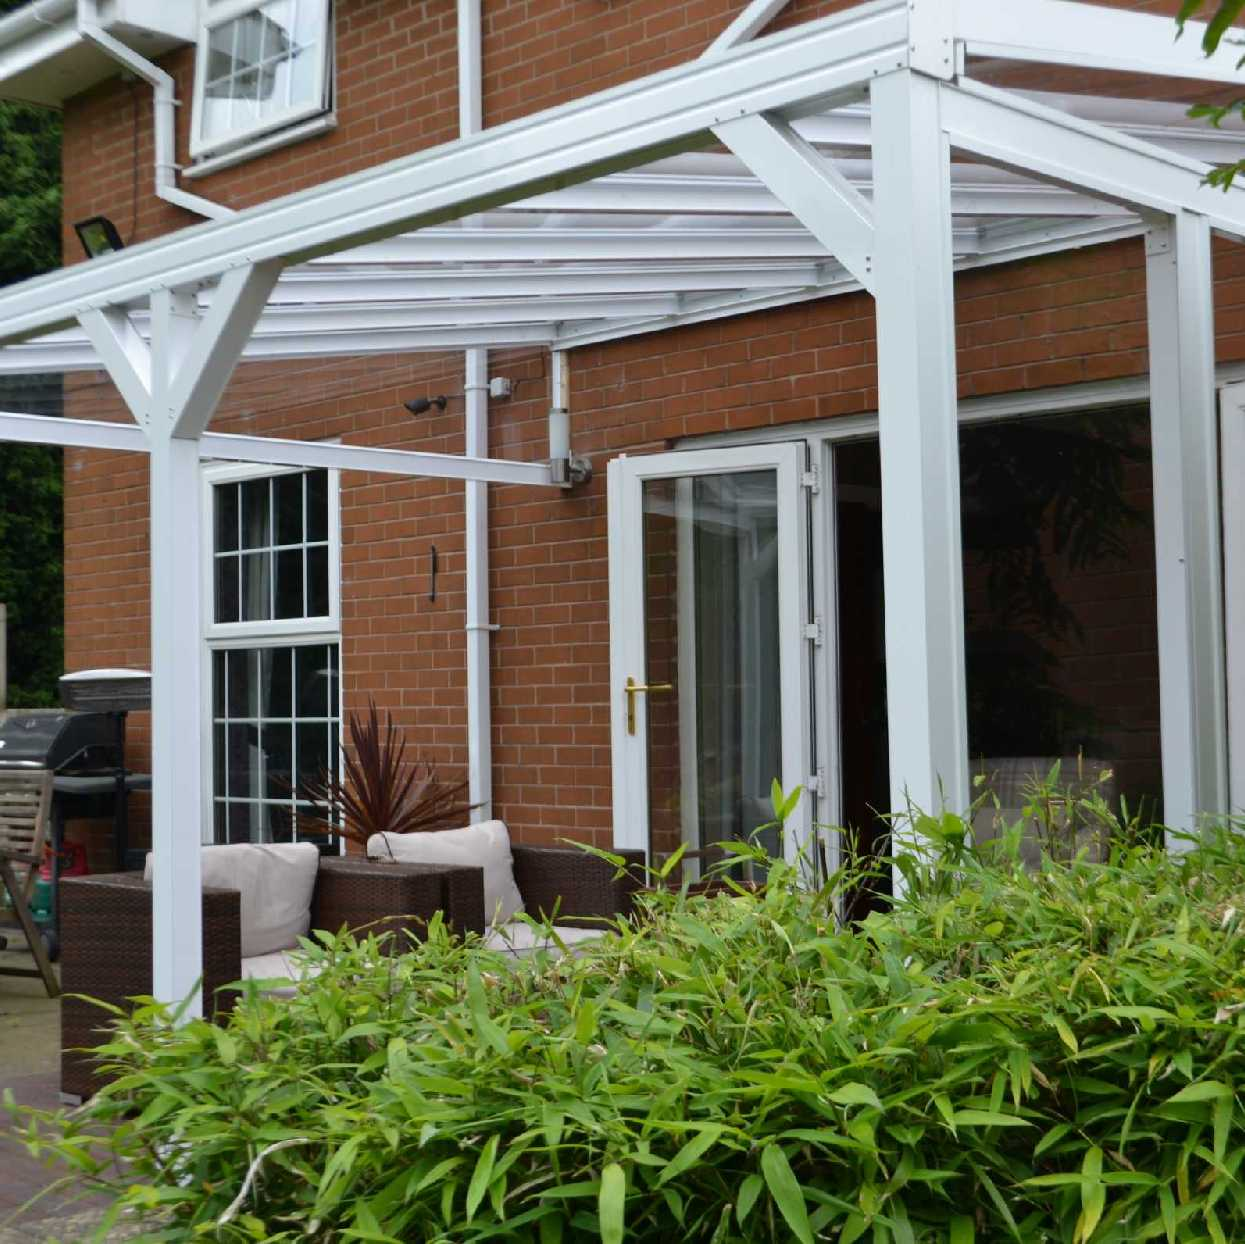 Omega Smart White Lean-To Canopy UNGLAZED for 6mm Glazing - 7.0m (W) x 1.5m (P), (4) Supporting Posts from Omega Build